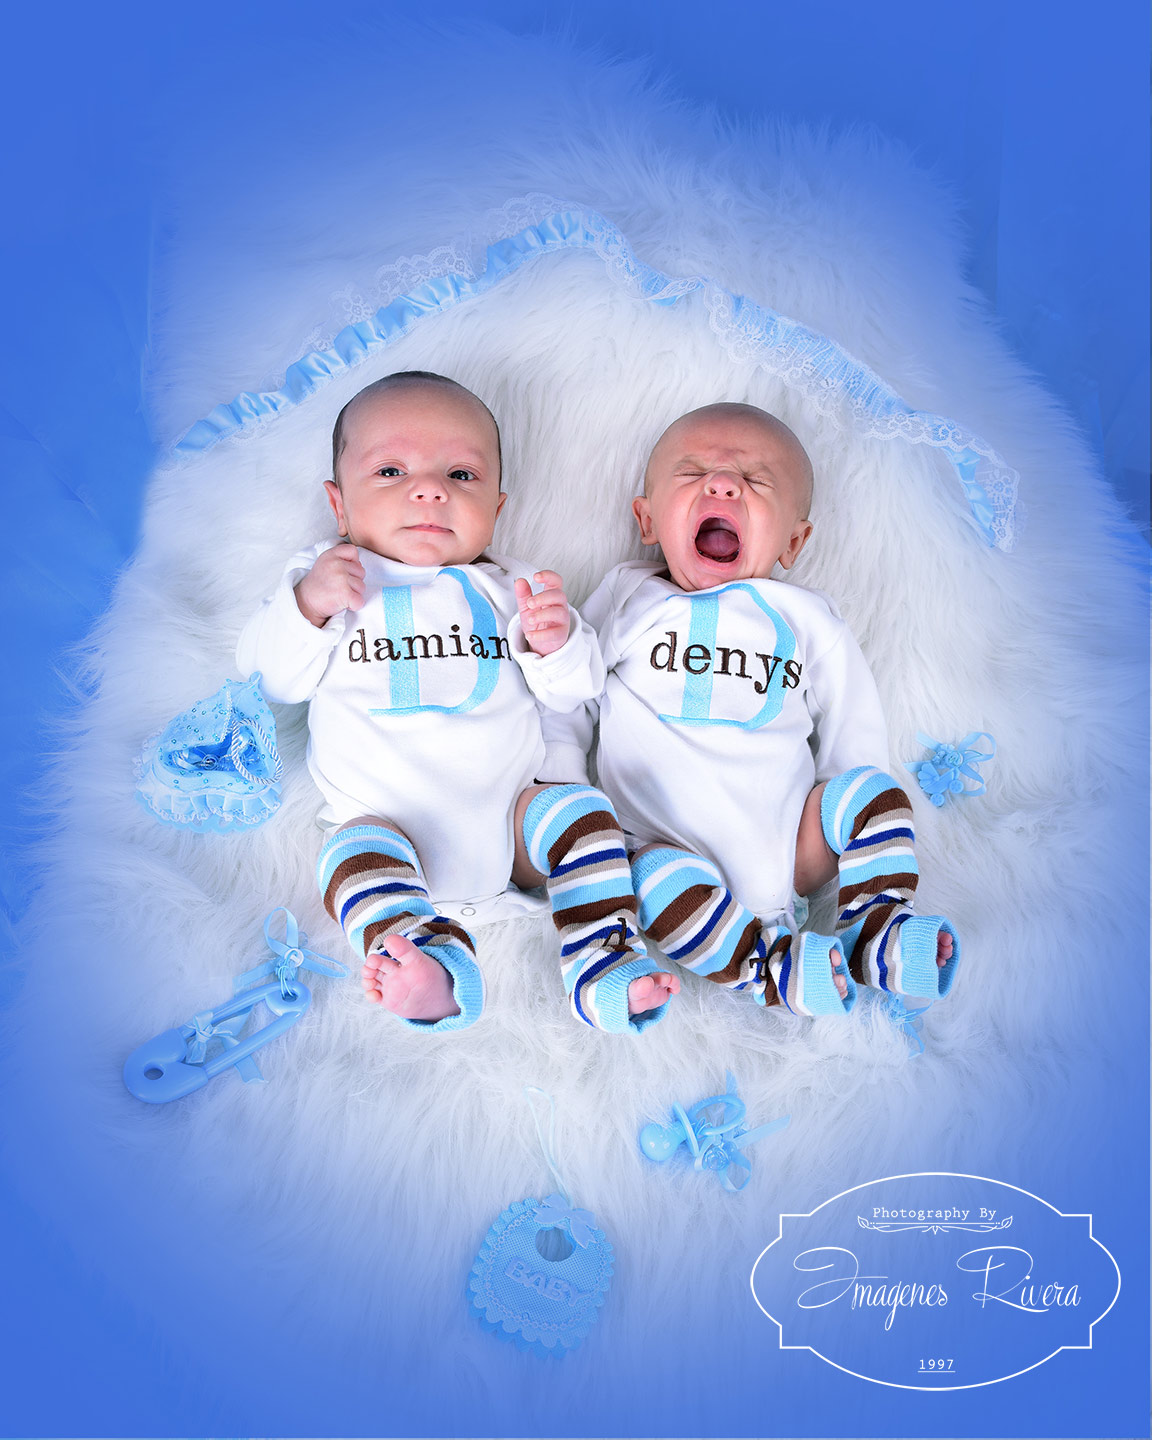 ♥ Denys & Damian twins newborn photography | Imagenes Rivera ♥